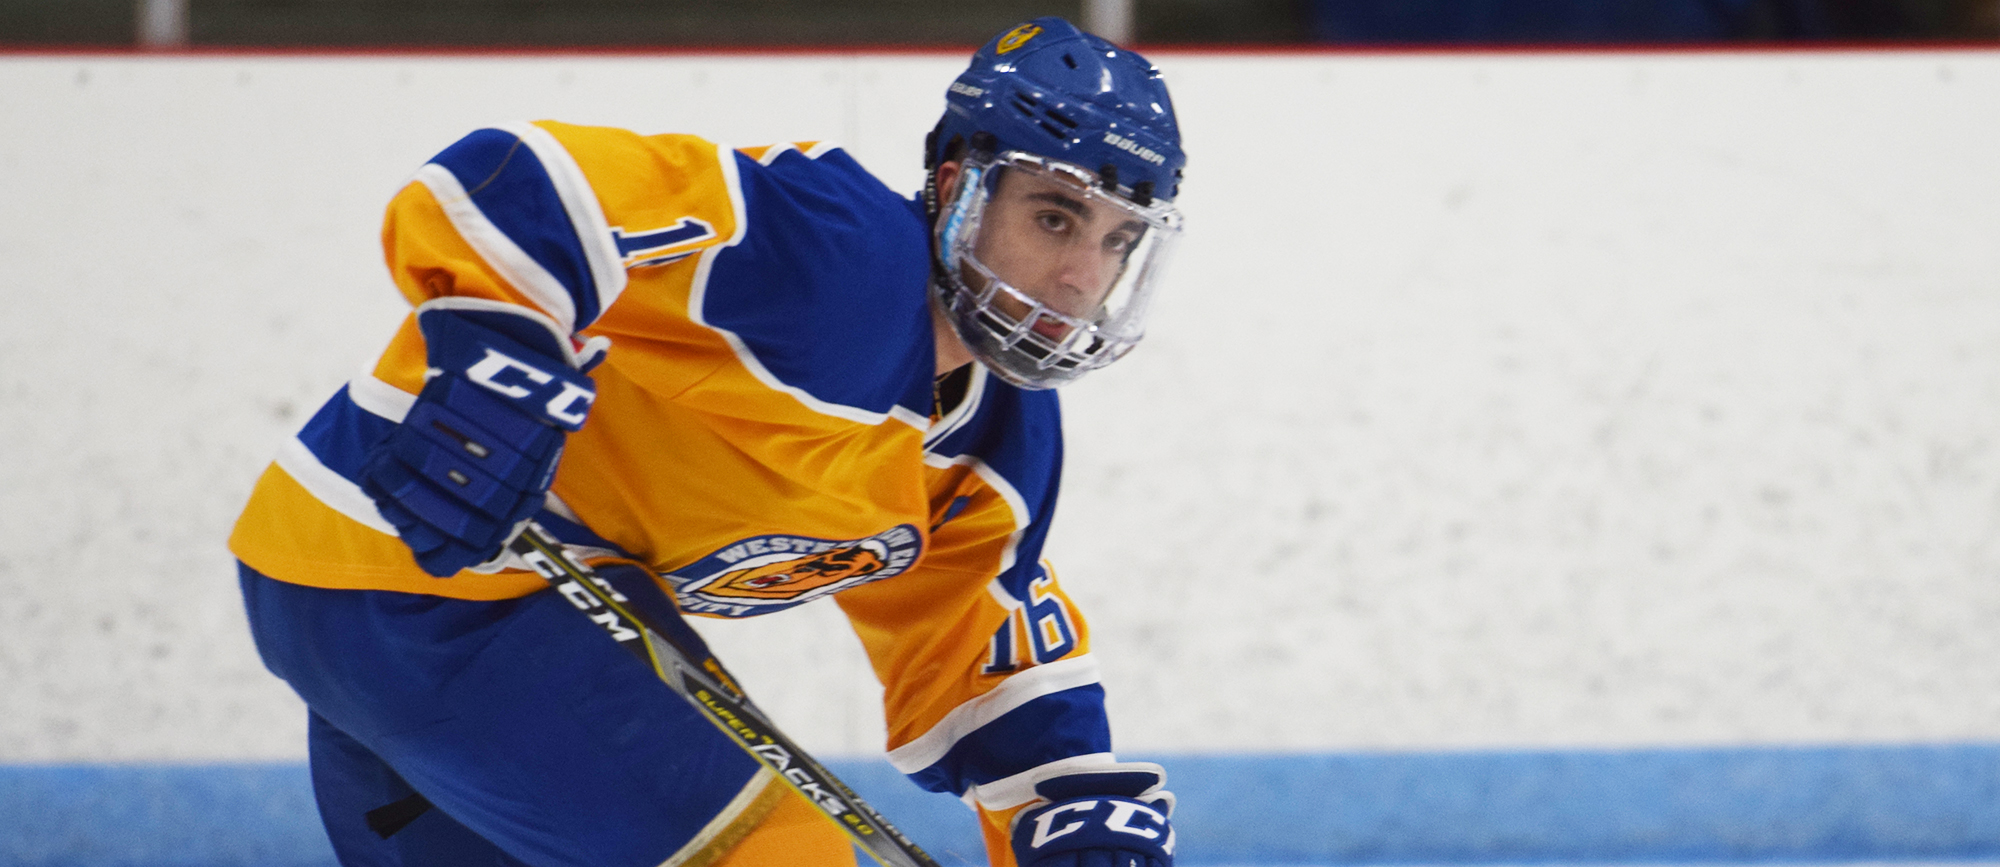 Senior forward David DiSchiavi scored his first goal of the season in Western New England's loss at Endicott on Saturday (photo by Rachael Margossian).